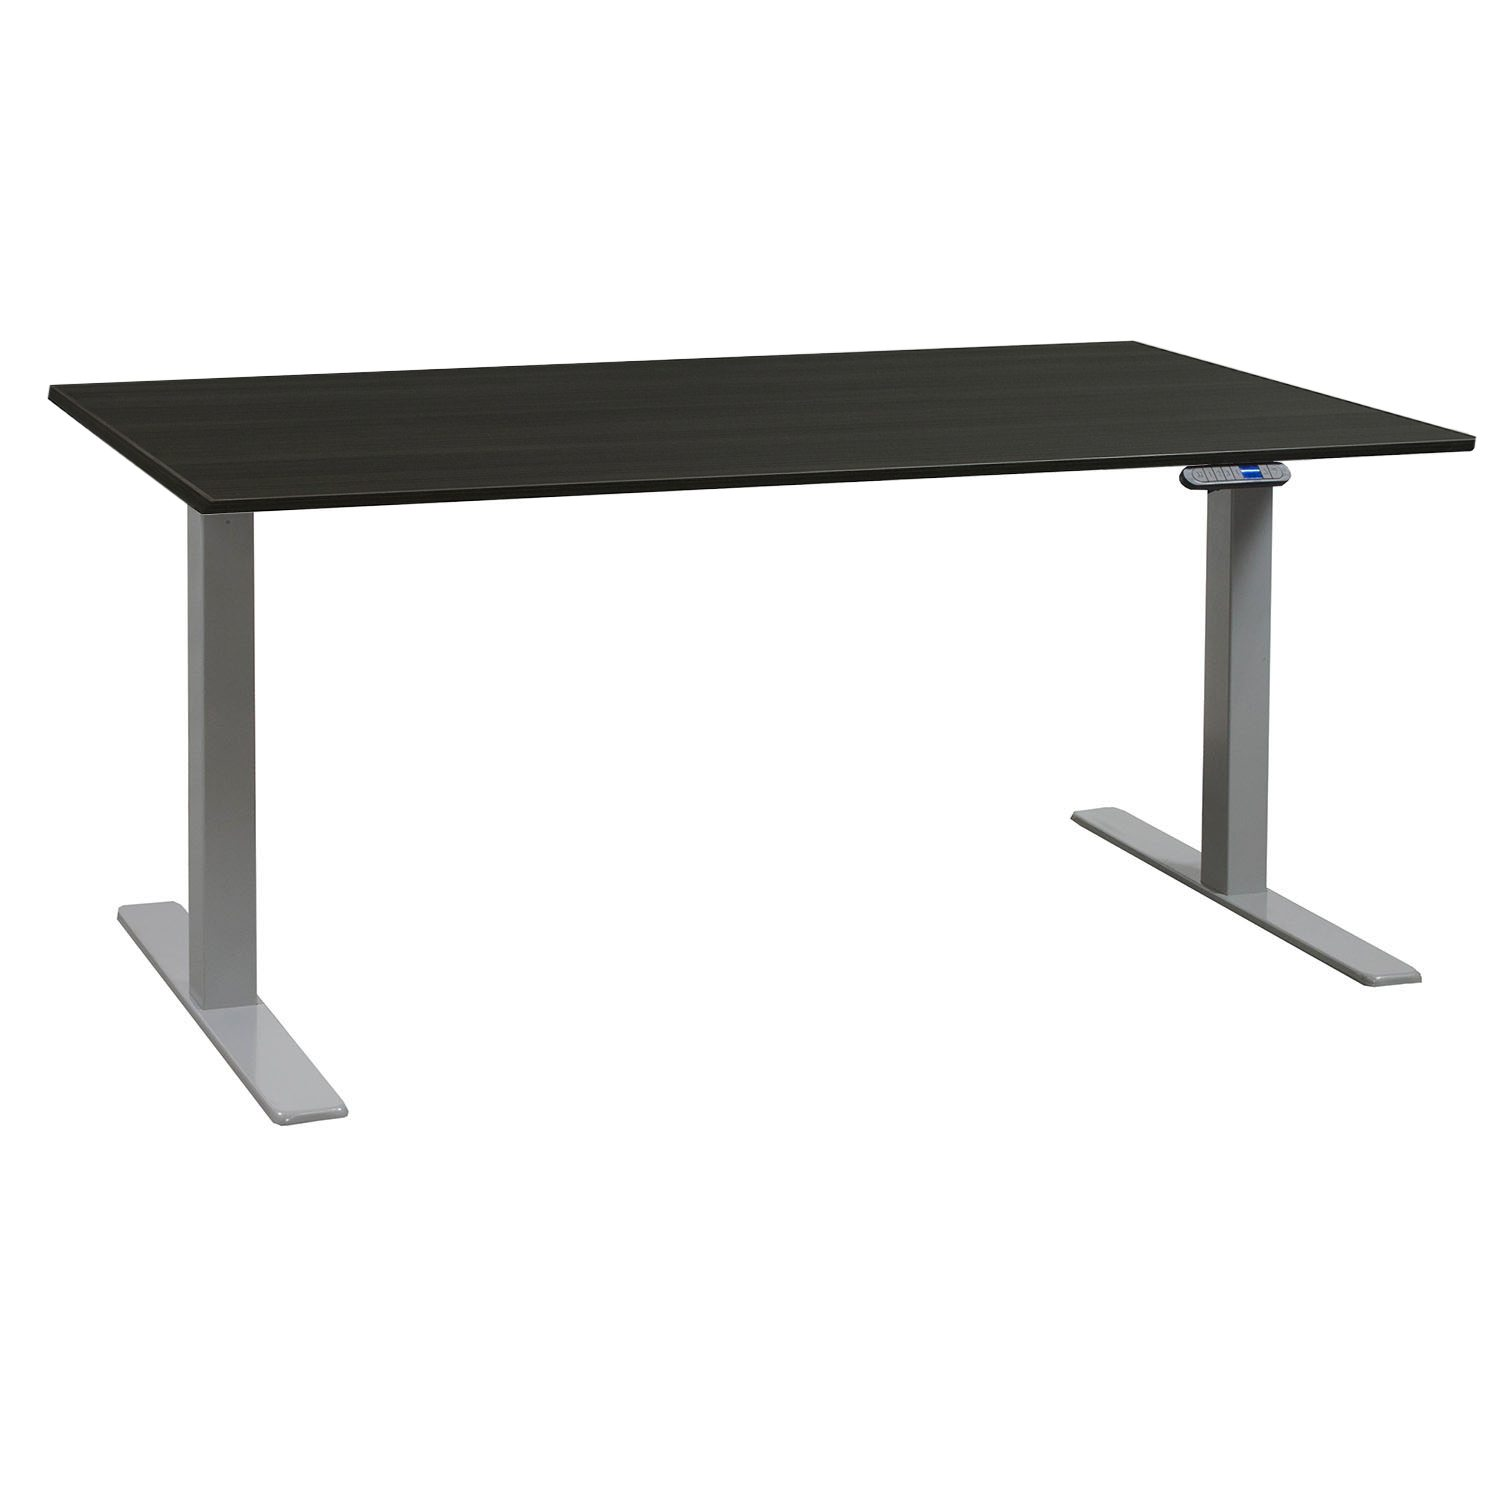 Brilliant Gosit New Electric 30X60 Lifting Table National Office Interiors And Liquidators Download Free Architecture Designs Licukmadebymaigaardcom